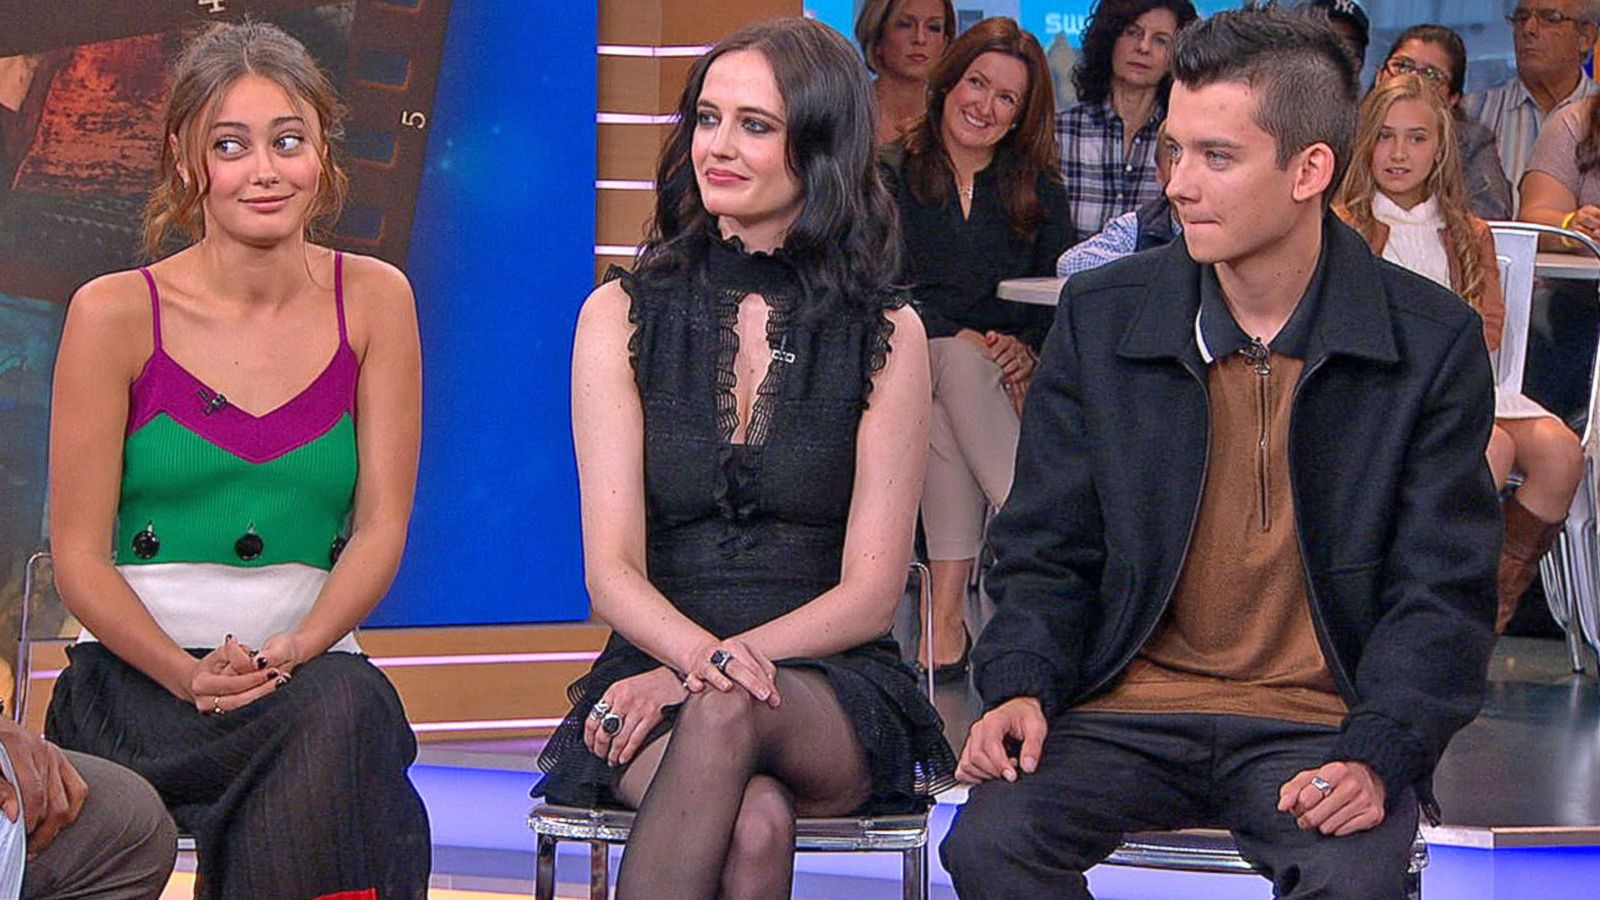 VIDEO: Stars of 'Miss Peregrine's Home for Peculiar Children'